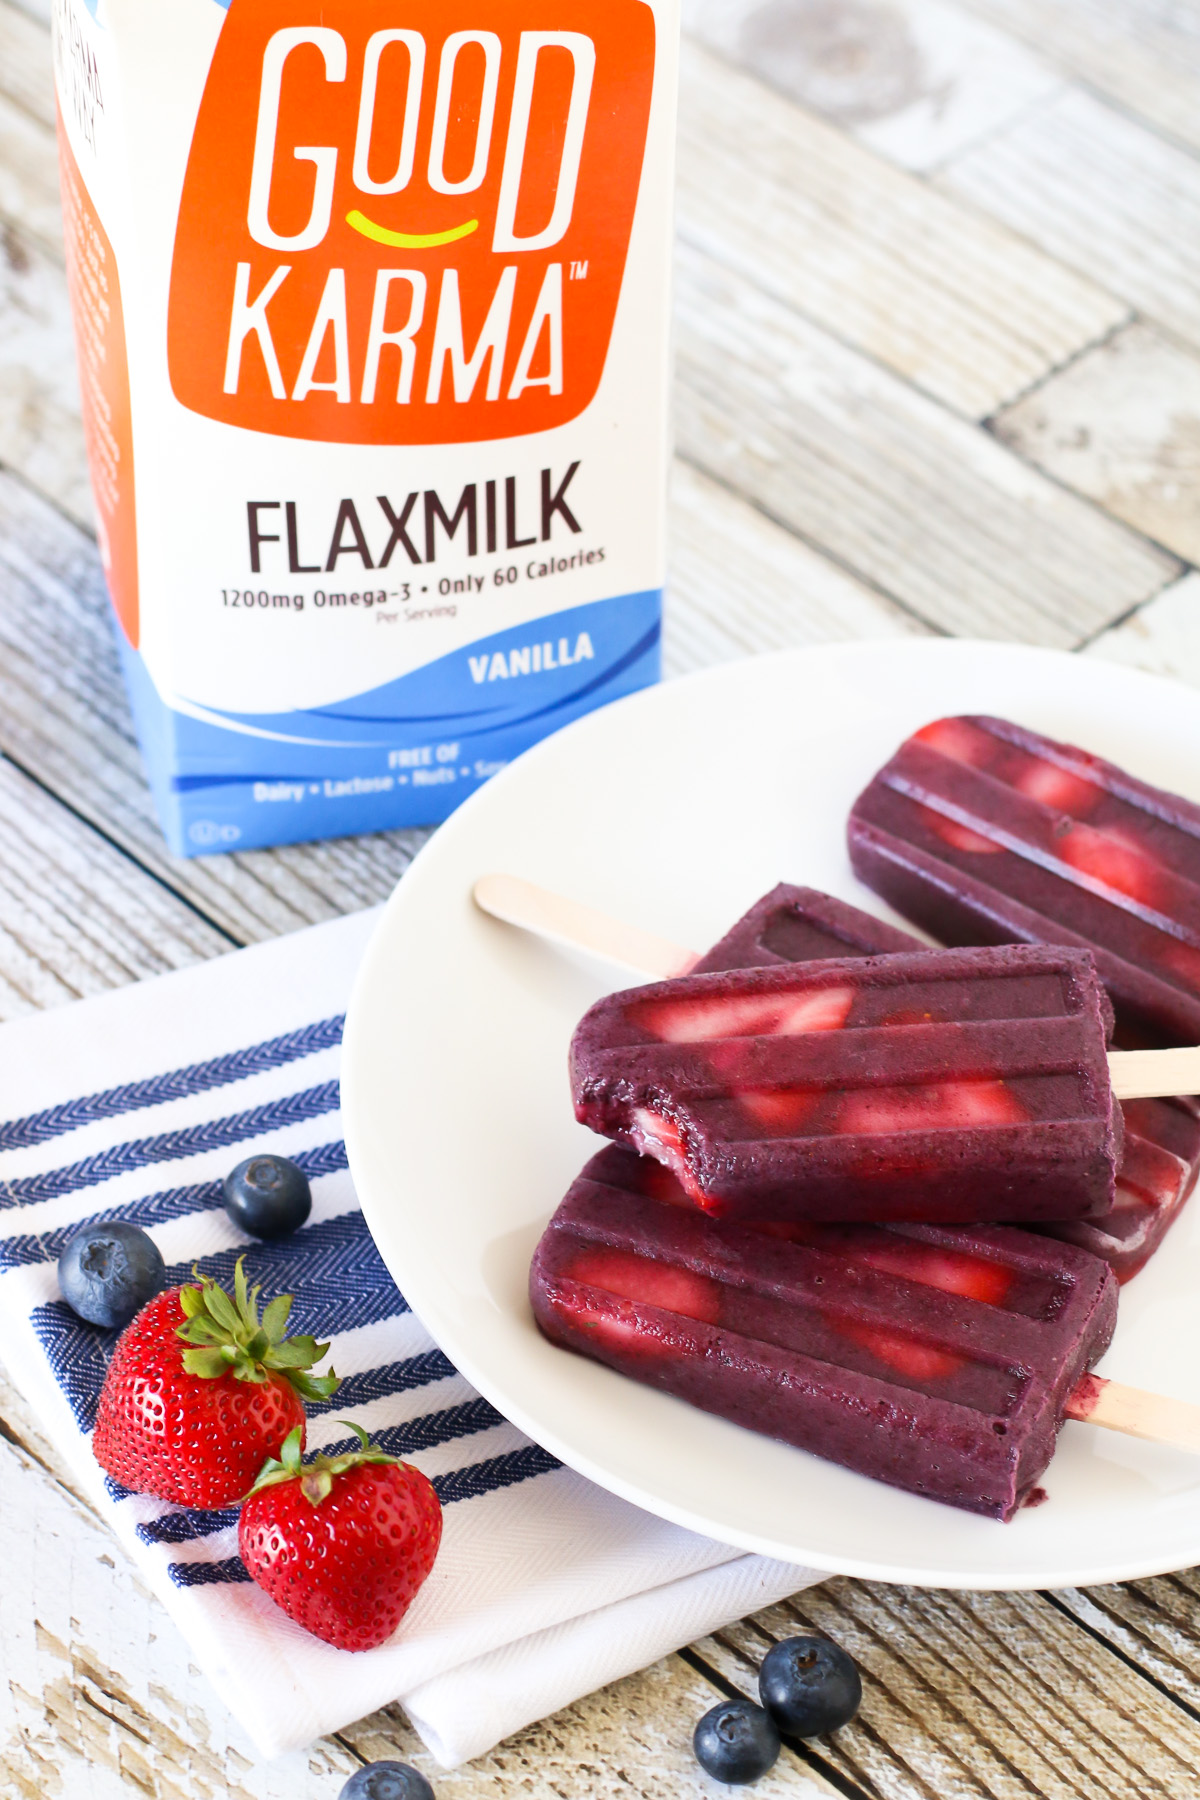 Berry Smoothie Popsicles. Made with Good Karma Flaxmilk, these berry smoothie popsicles are perfect for summer!